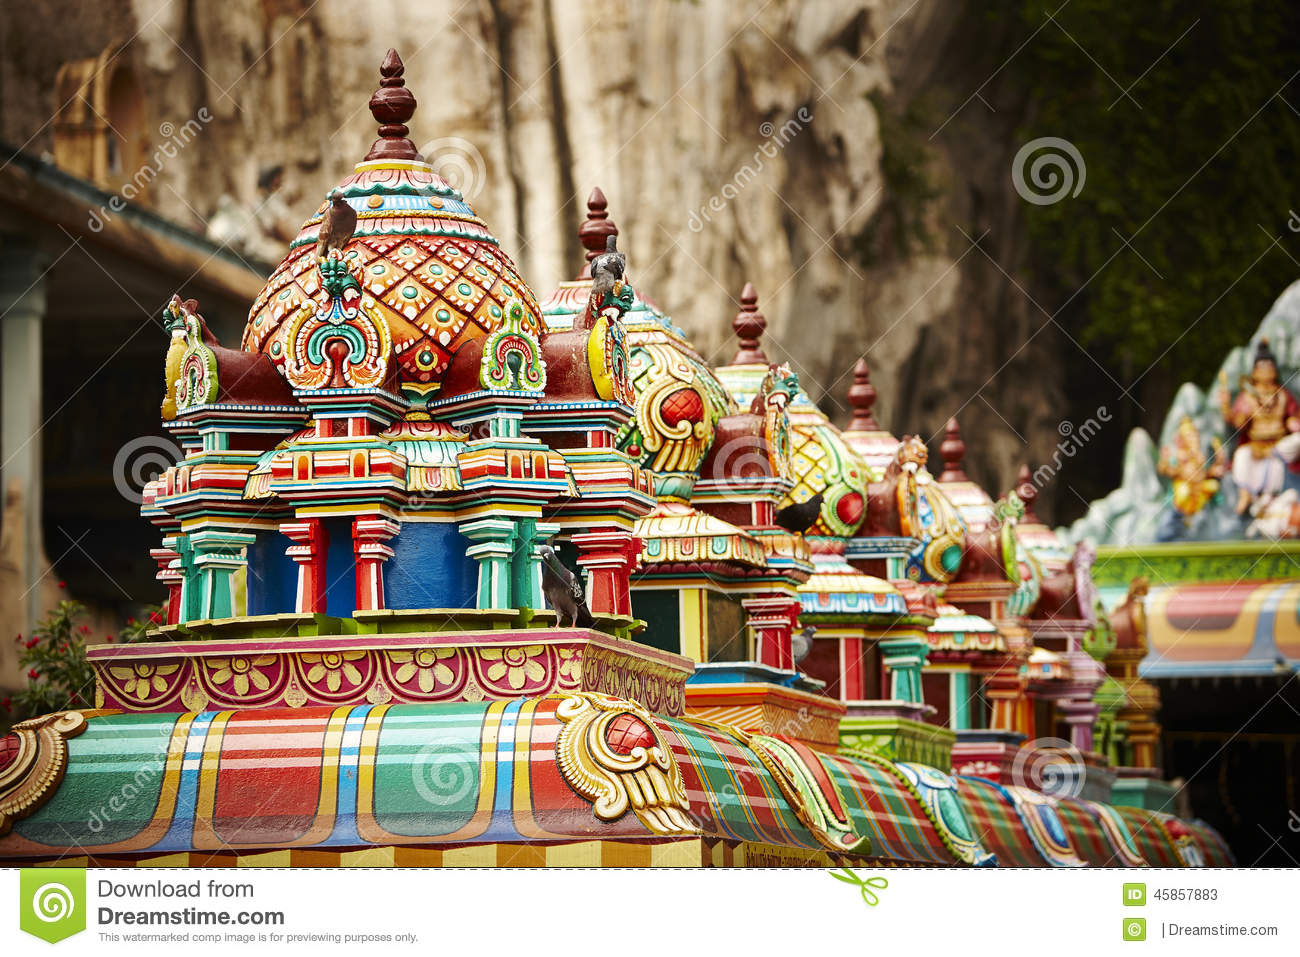 Roof structure of Batu Caves, Malaysia